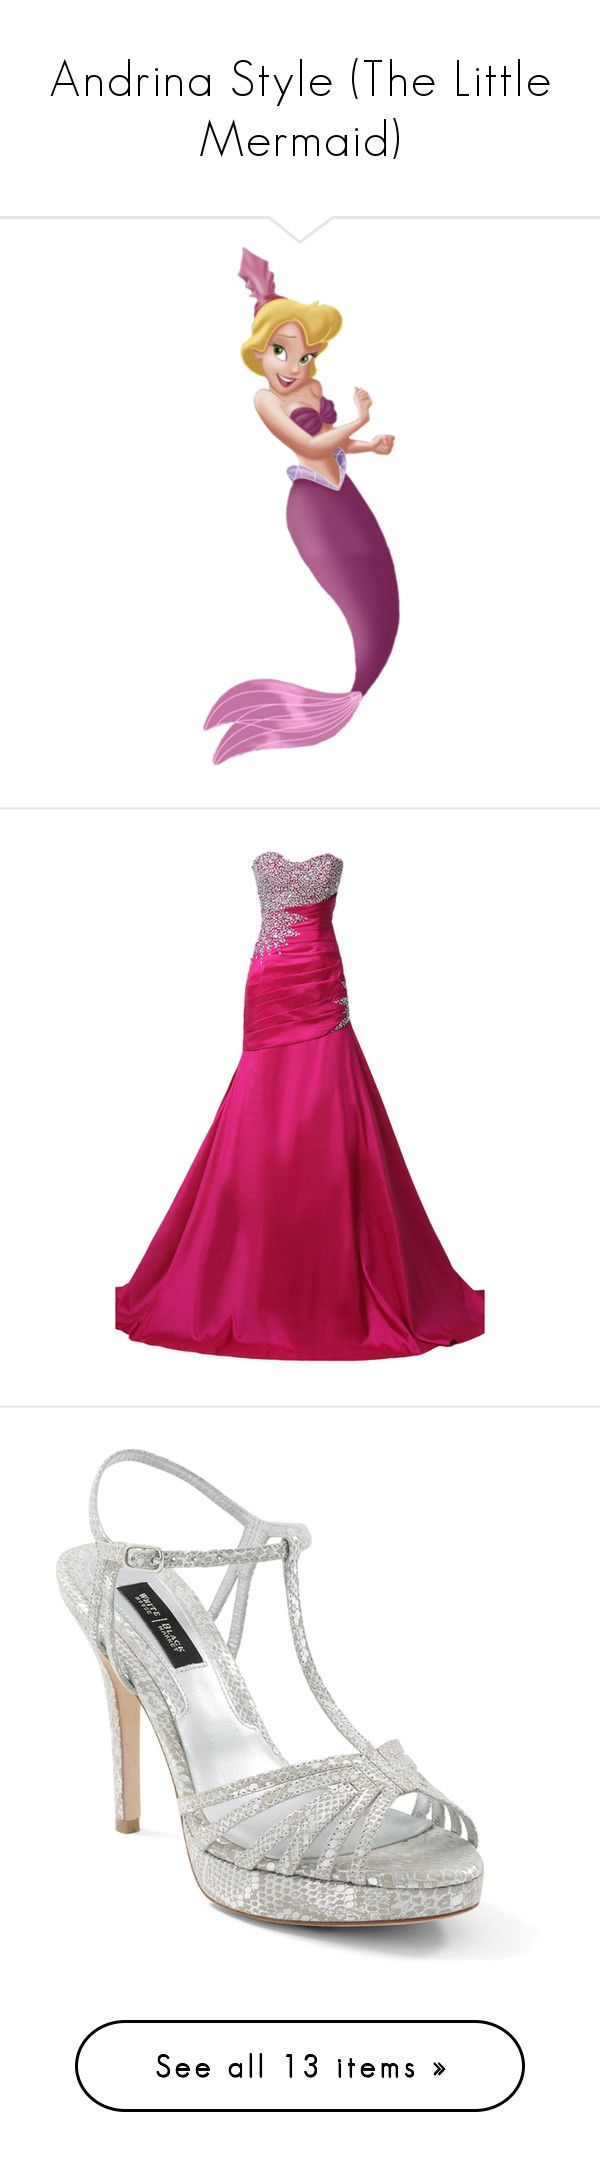 """""""Andrina Style (The Little Mermaid)"""" by briony-jae ❤ liked on Polyvore featuring disney, characters, andrina, little mermaid, ariel, dresses, gowns, long dress, robe longue and cocktail prom dress"""